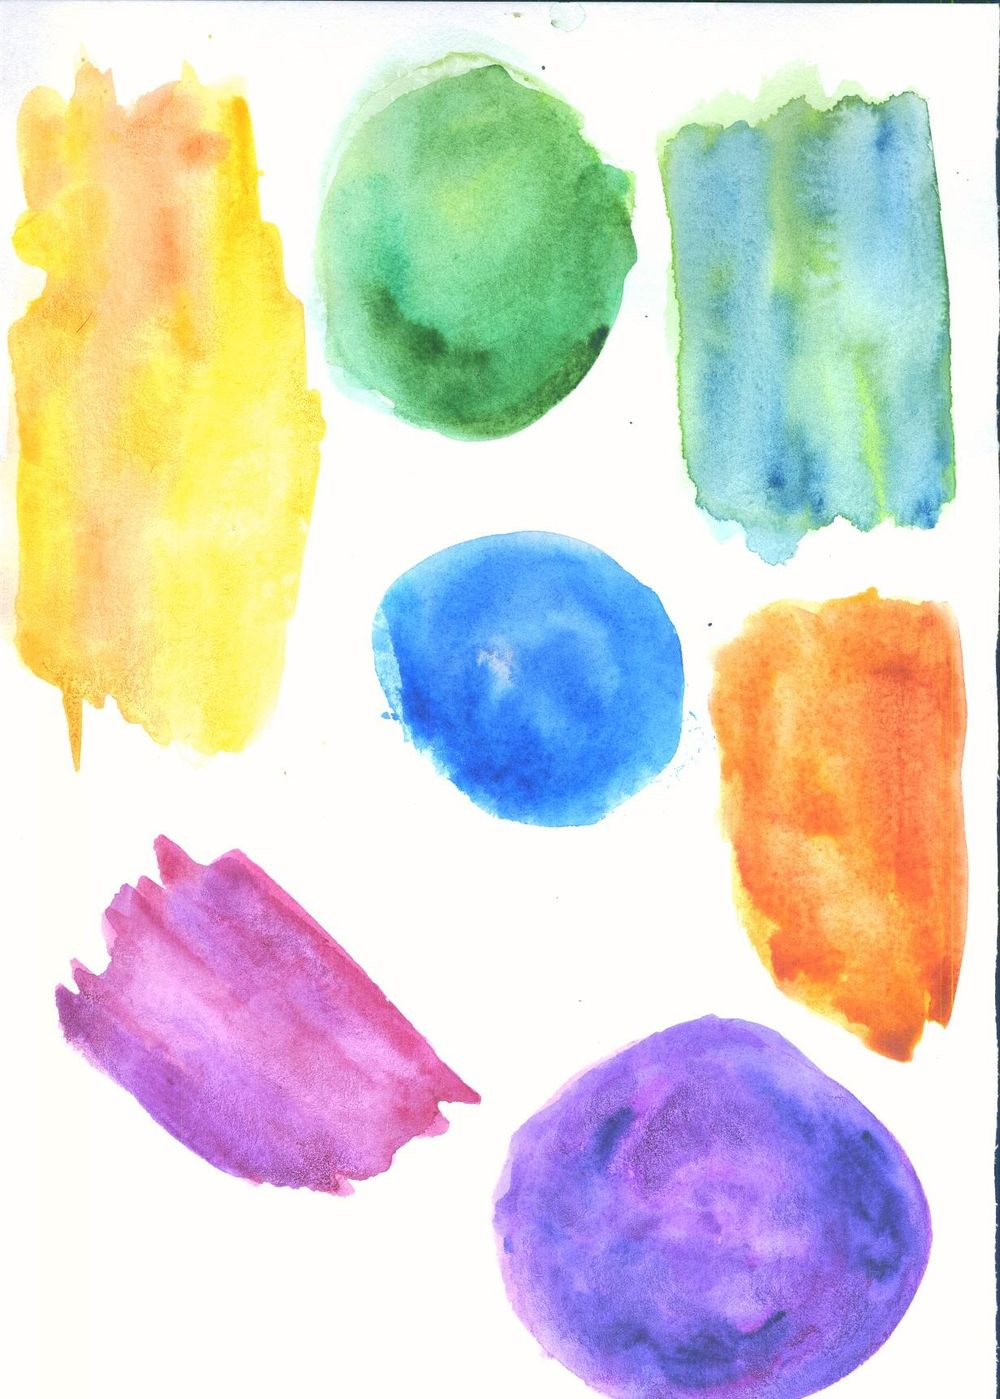 watercolor texture - image 1 - student project